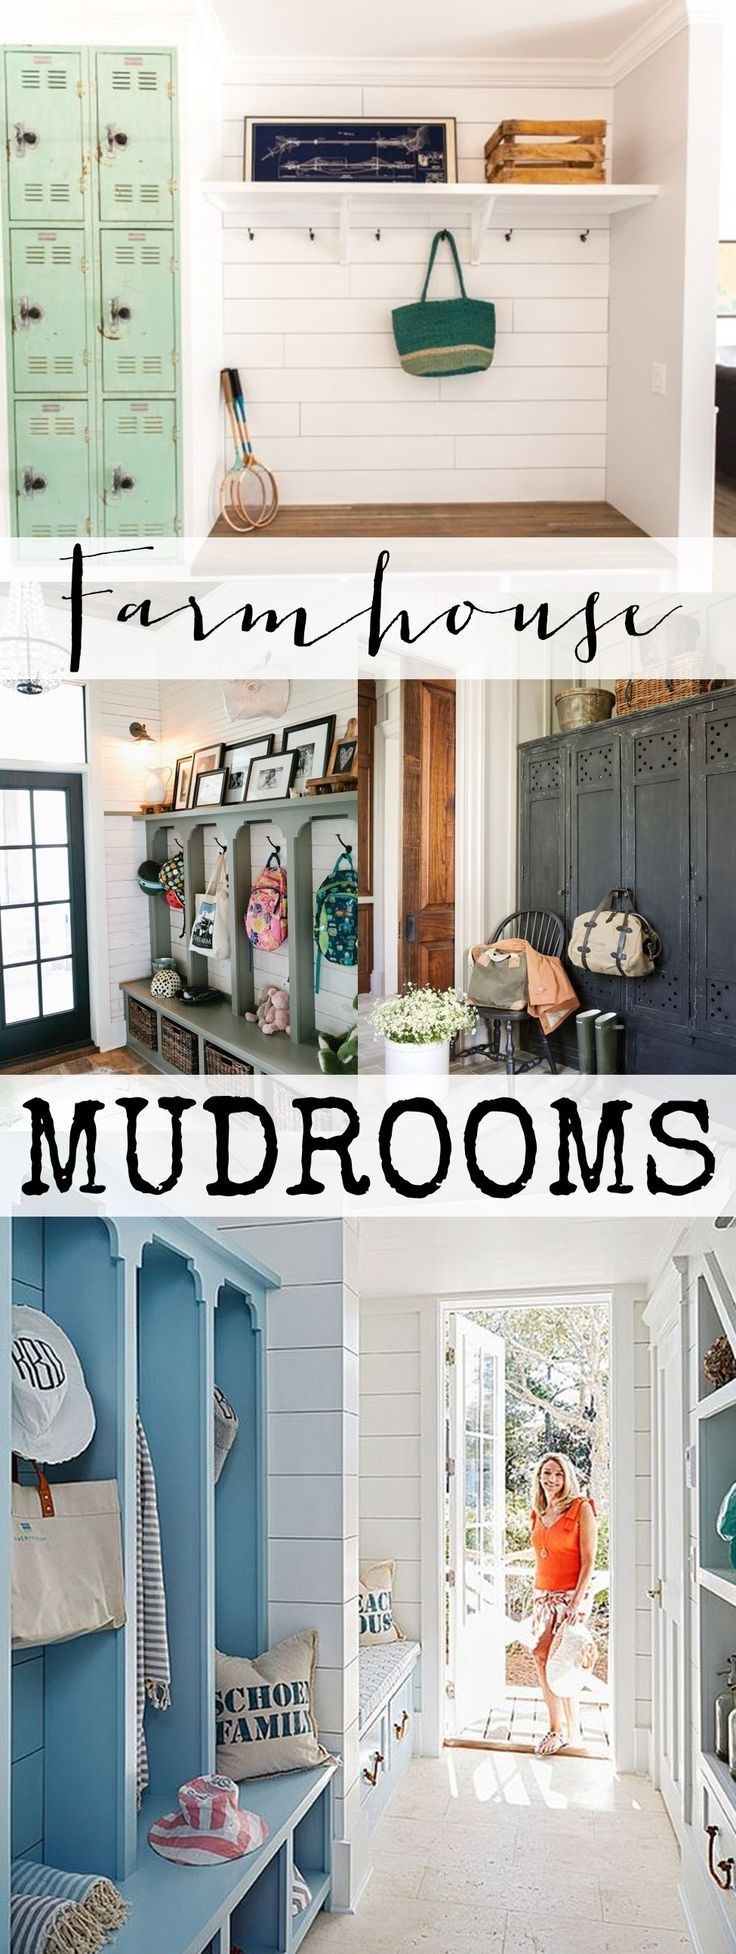 Beautiful mudroom ideas with tons of inspiration.